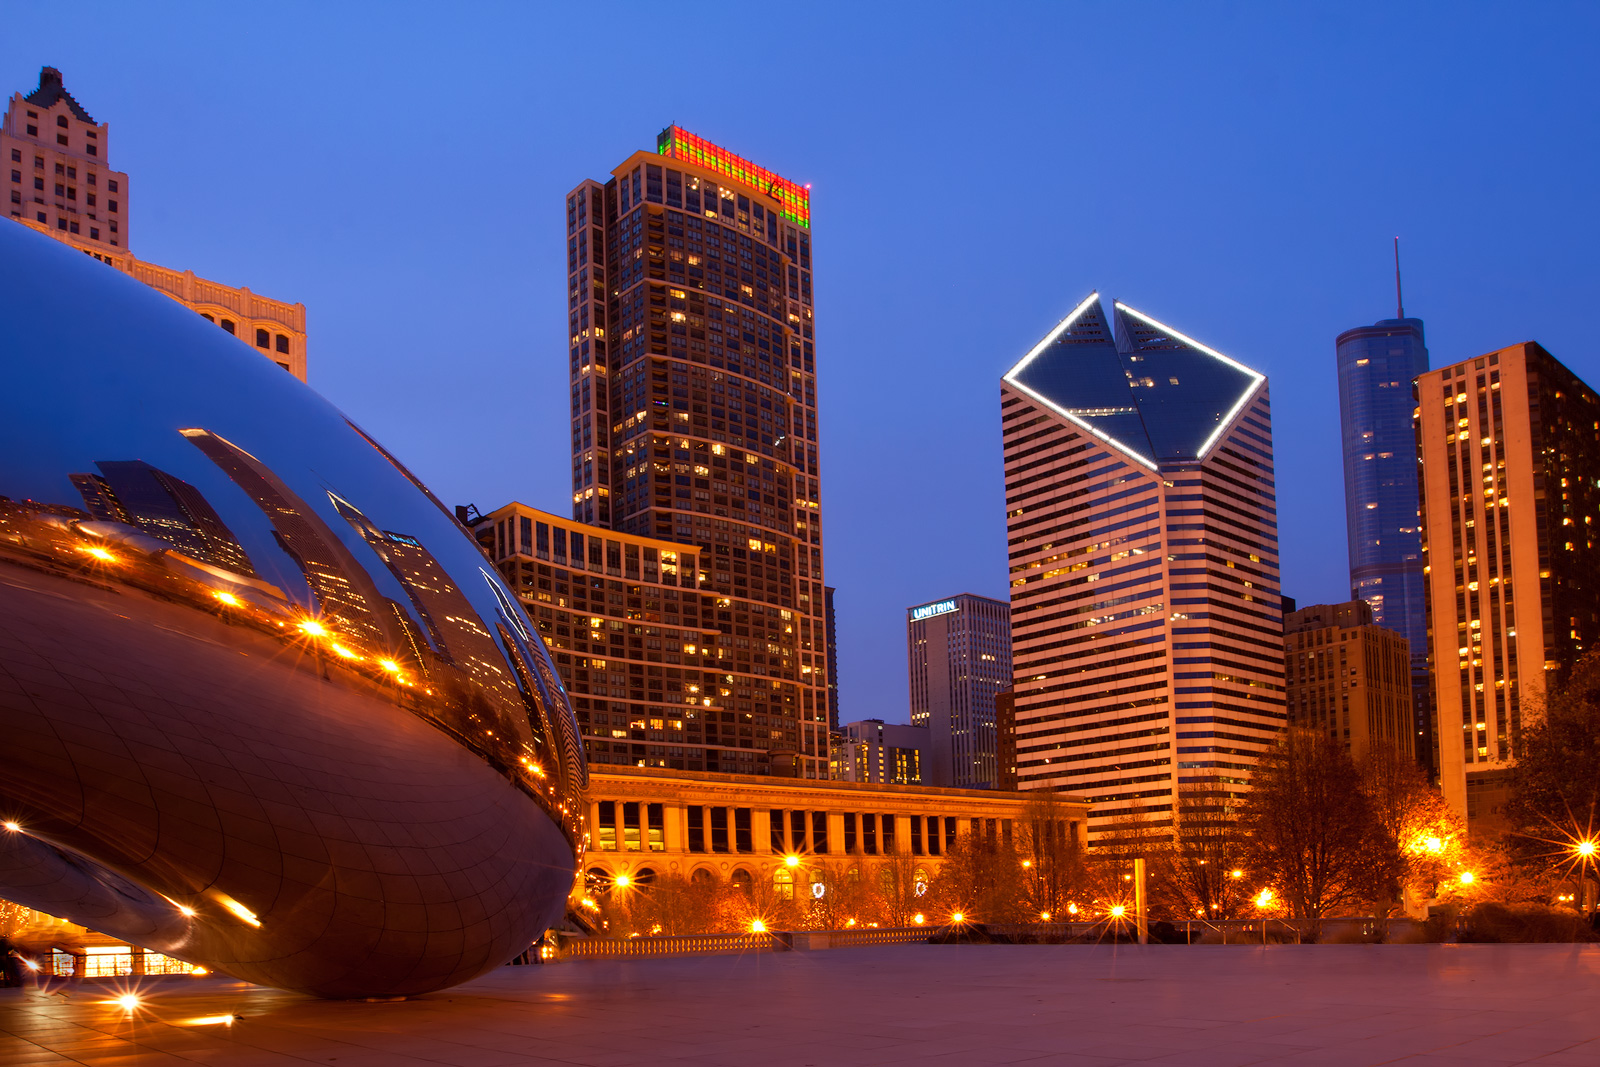 Chicago's Bean and skyscrapers at twilight